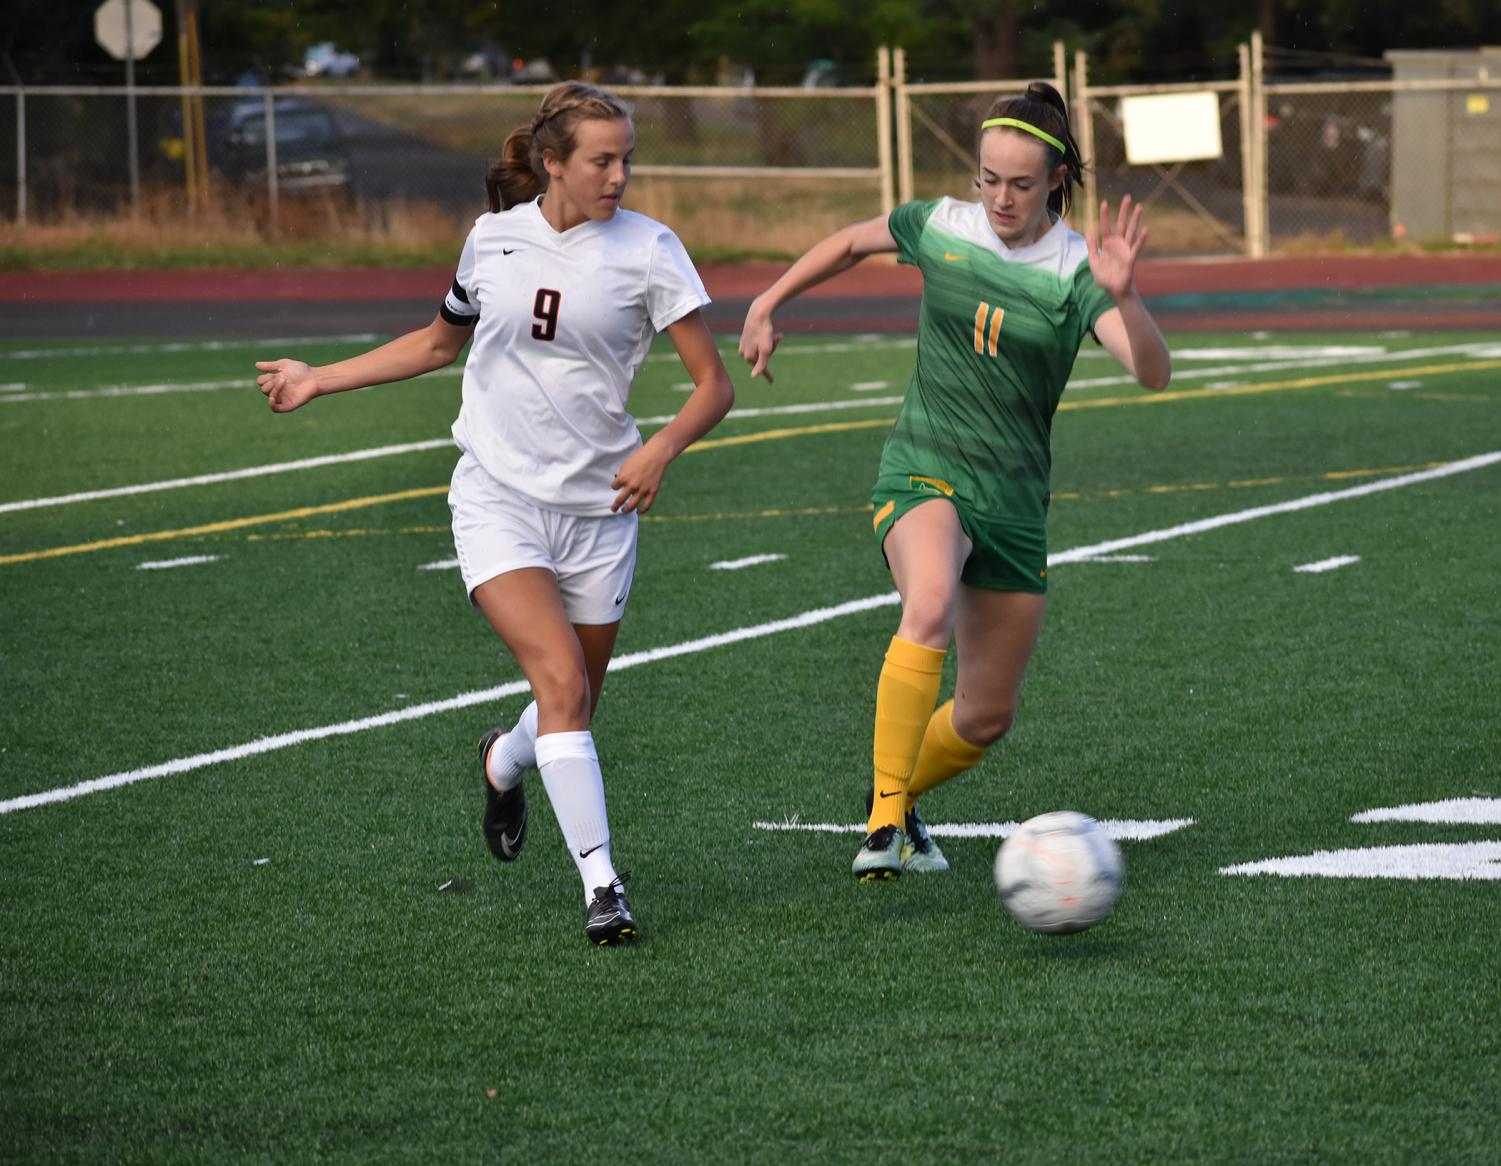 Grace Buchanan, junior, dribbles past defender Katrianne Sinn of Silverton. The Warriors defeated the Foxes 3-0 on Sept. 11 to improve their record to 3-1.